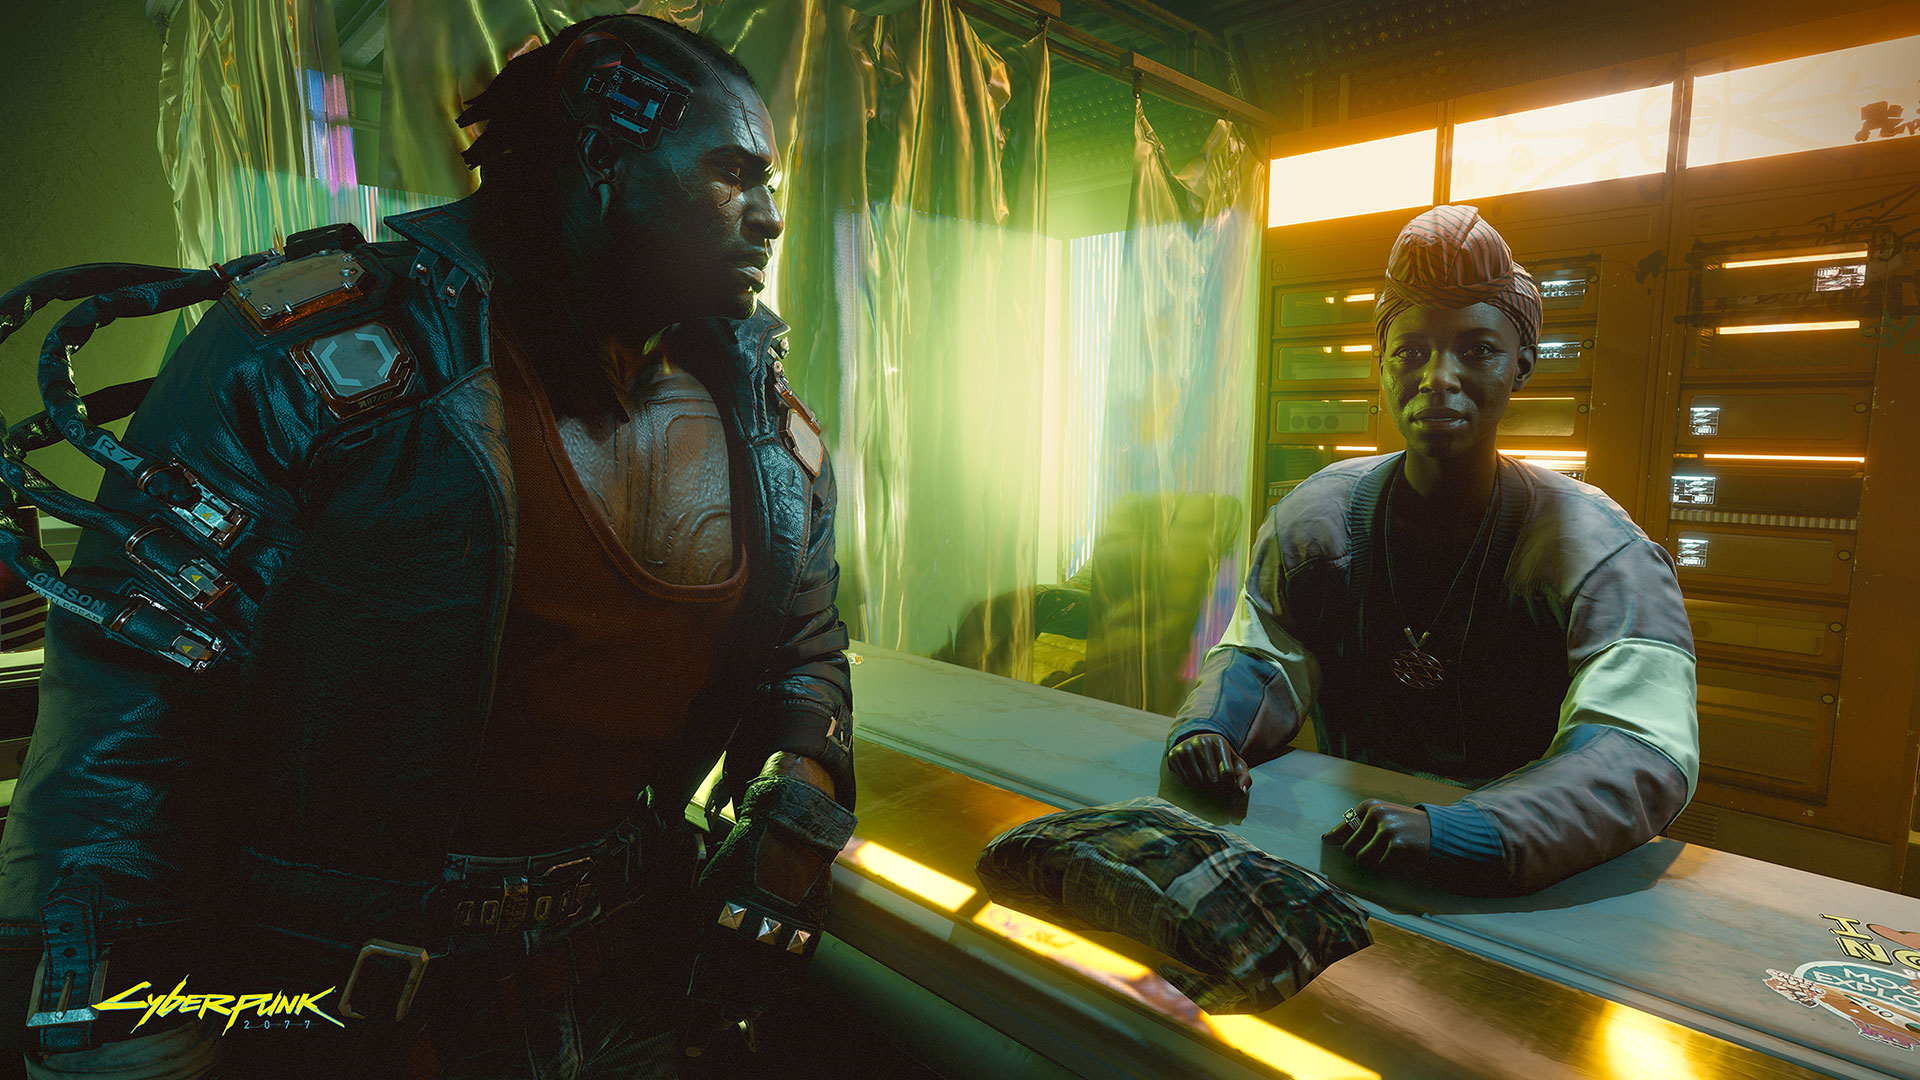 Cyberpunk2077-Just_in_time_for_dinner-RG